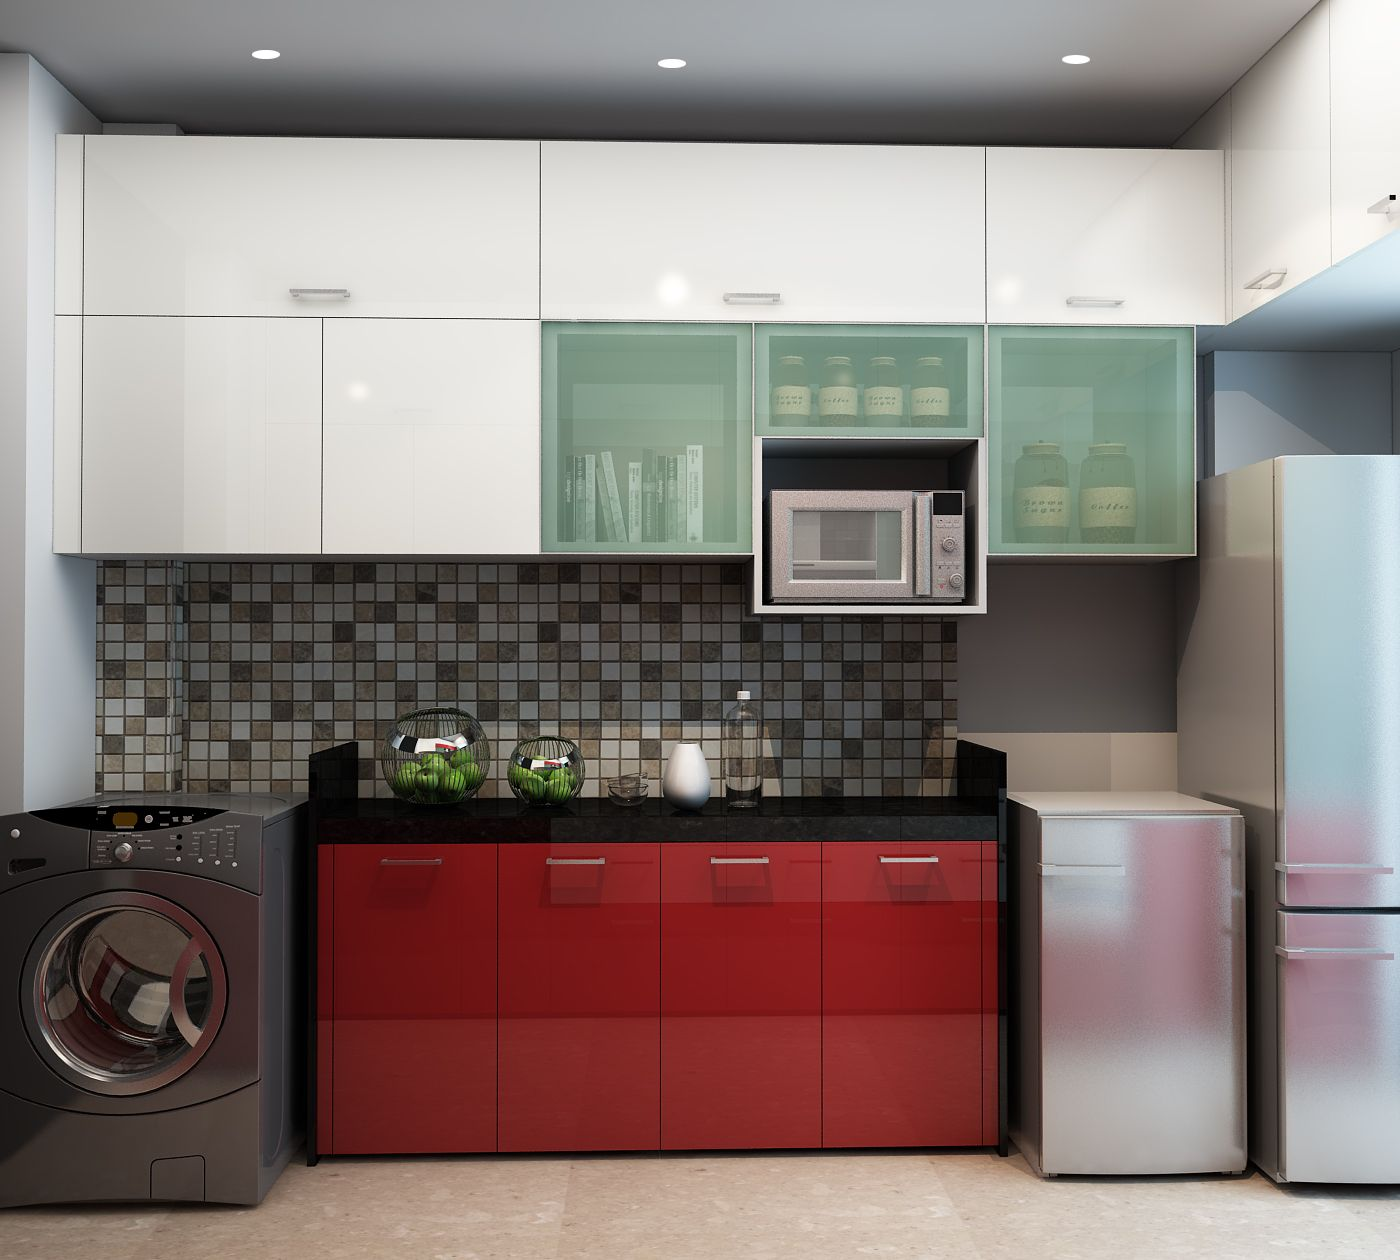 Cabinets In Red For A Pop Of Colour And To Break The Monotony Modern Kitchen Cab Modern Kitchen Cabinet Design Modular Kitchen Cabinets Kitchen Cabinet Design